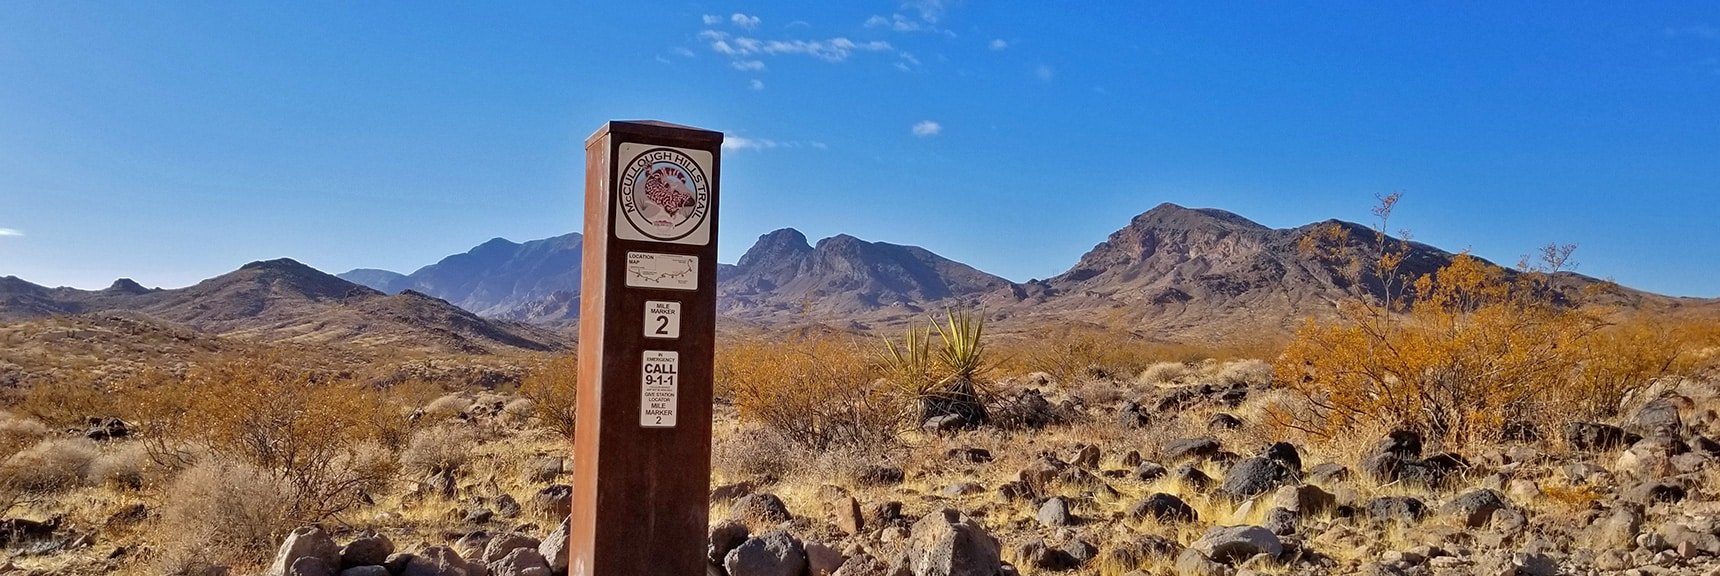 Mile 2 Marker, Evidence of Ancient Volcanic Action   McCullough Hills Trail in Sloan Canyon National Conservation Area, Nevada